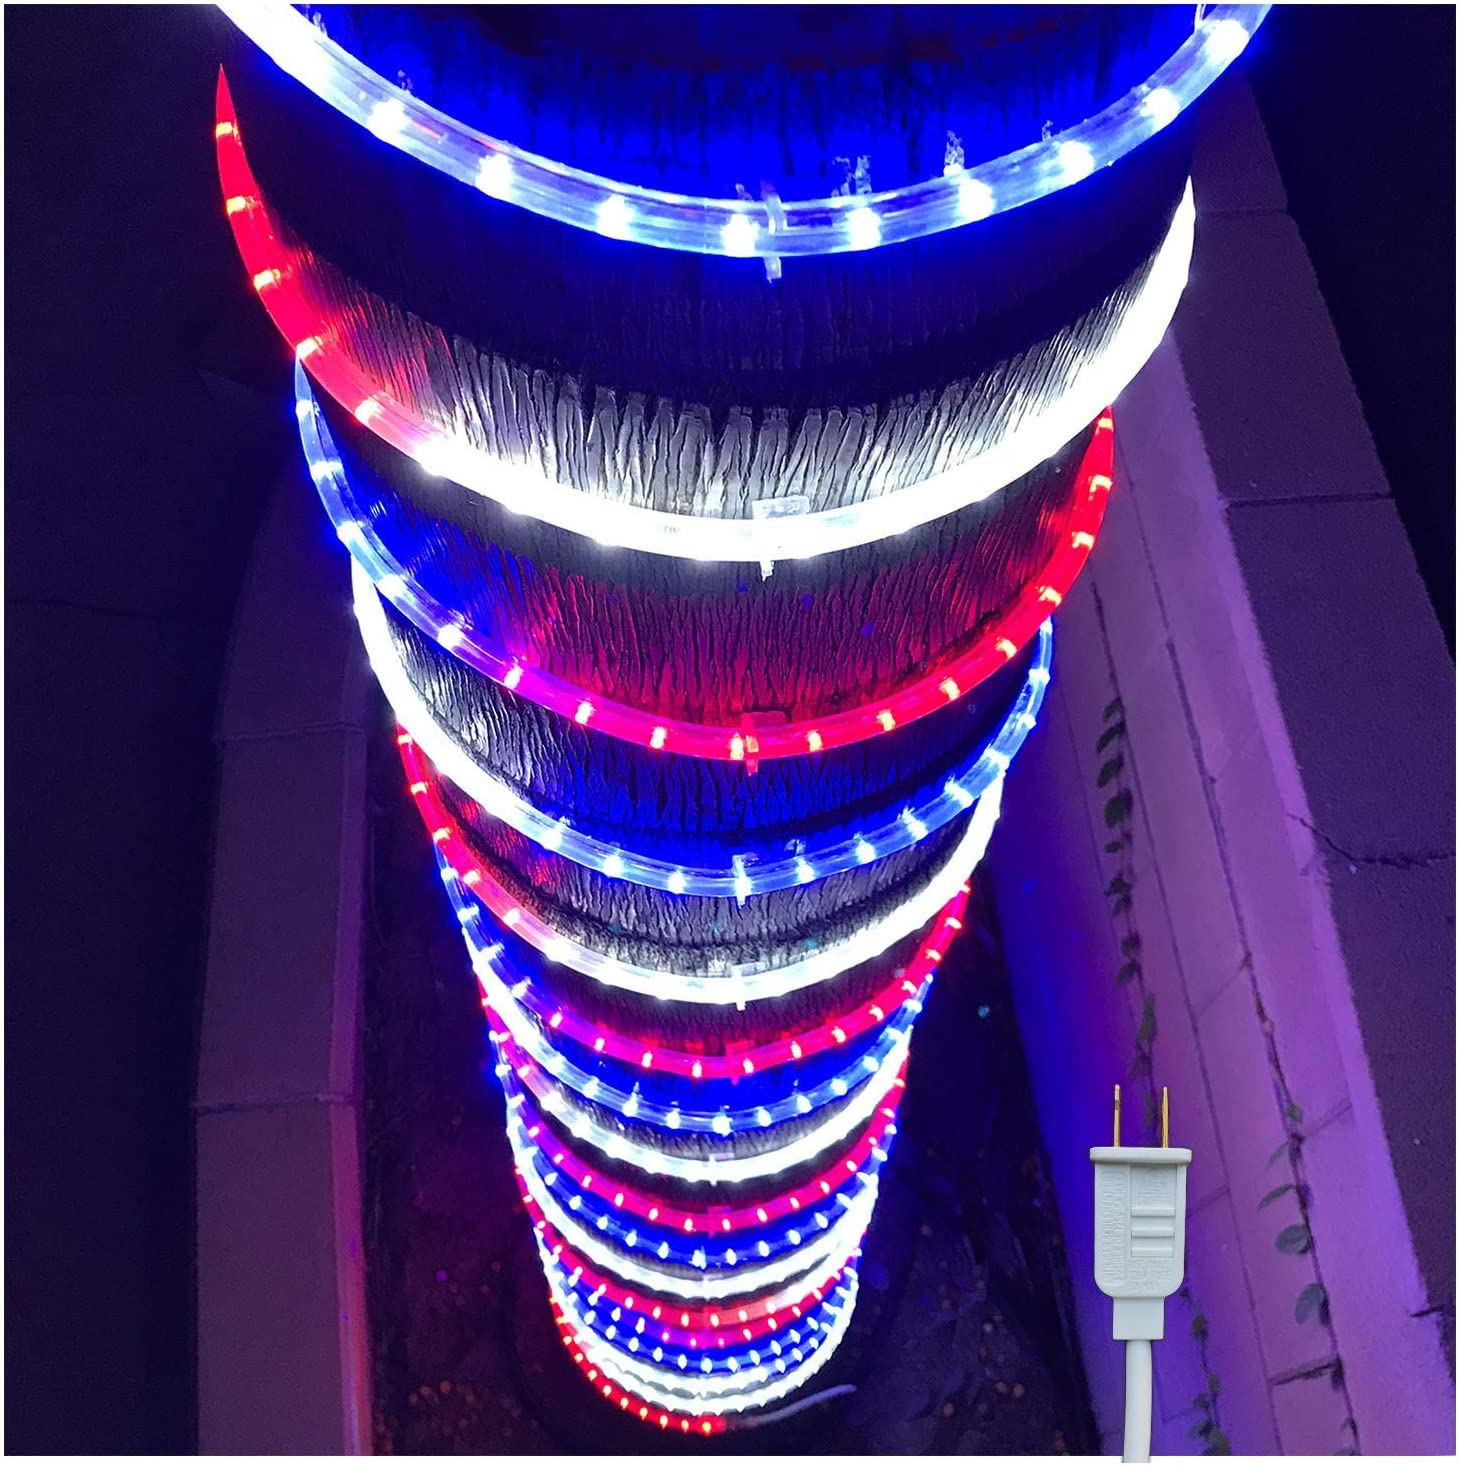 Russell Decor 30ft/9m Led Rope Lights Lamps Kit Indoor Outdoor Decorative Lighting for Patriotic 4th of July Memorial Day Decor Party Trees Patio Deck Flexible String Tube Lights- Blue Red White